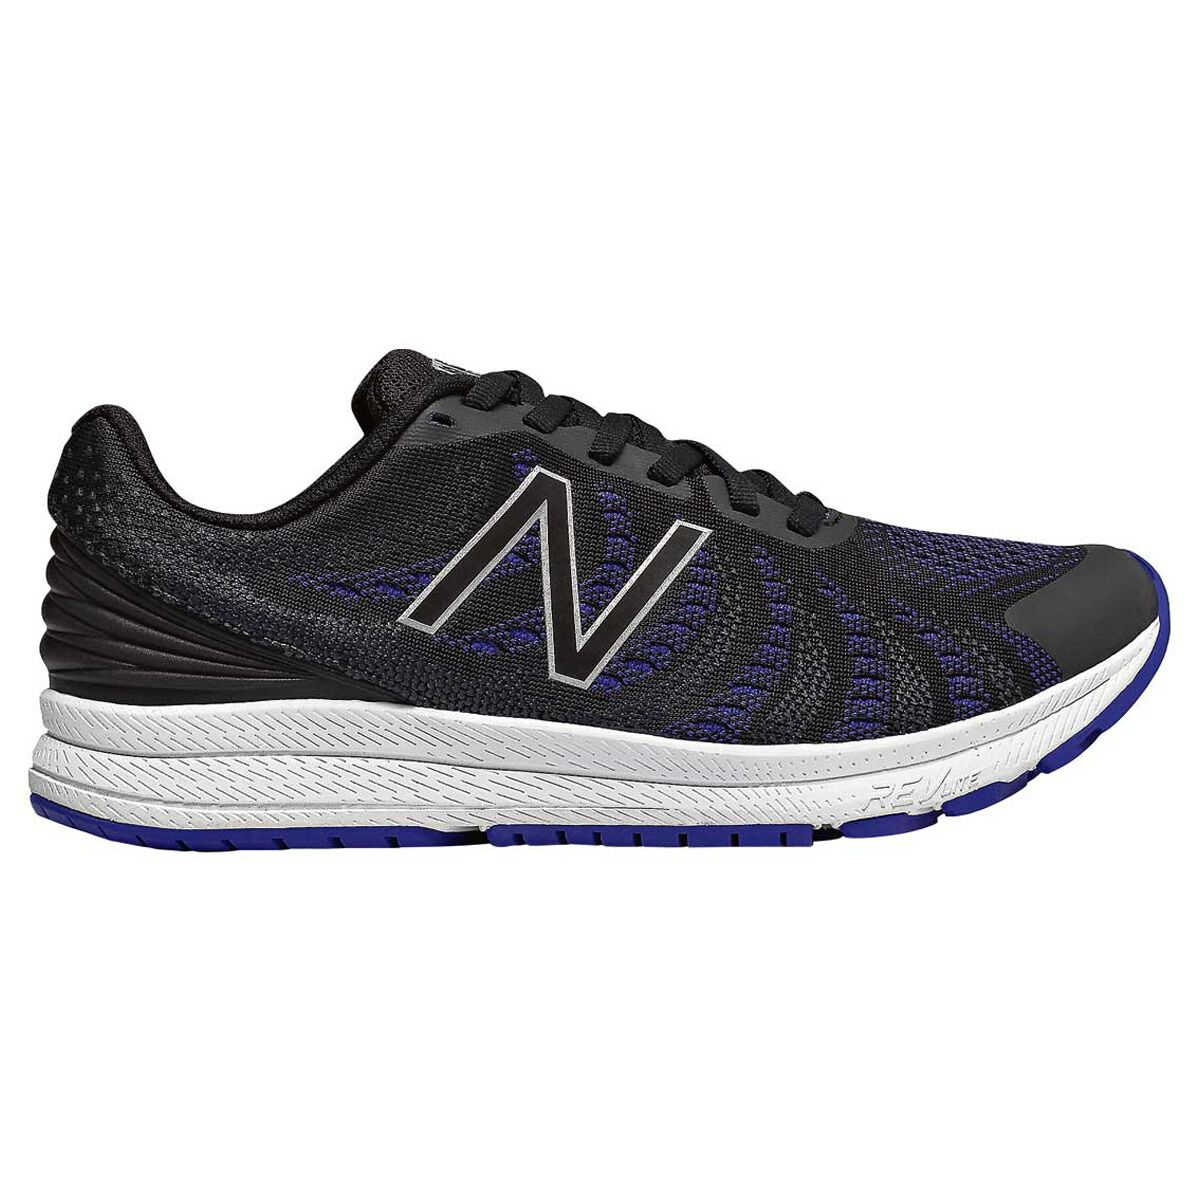 New Balance FuelCore Rush v3 Womens Running Shoes Black Blue US 6